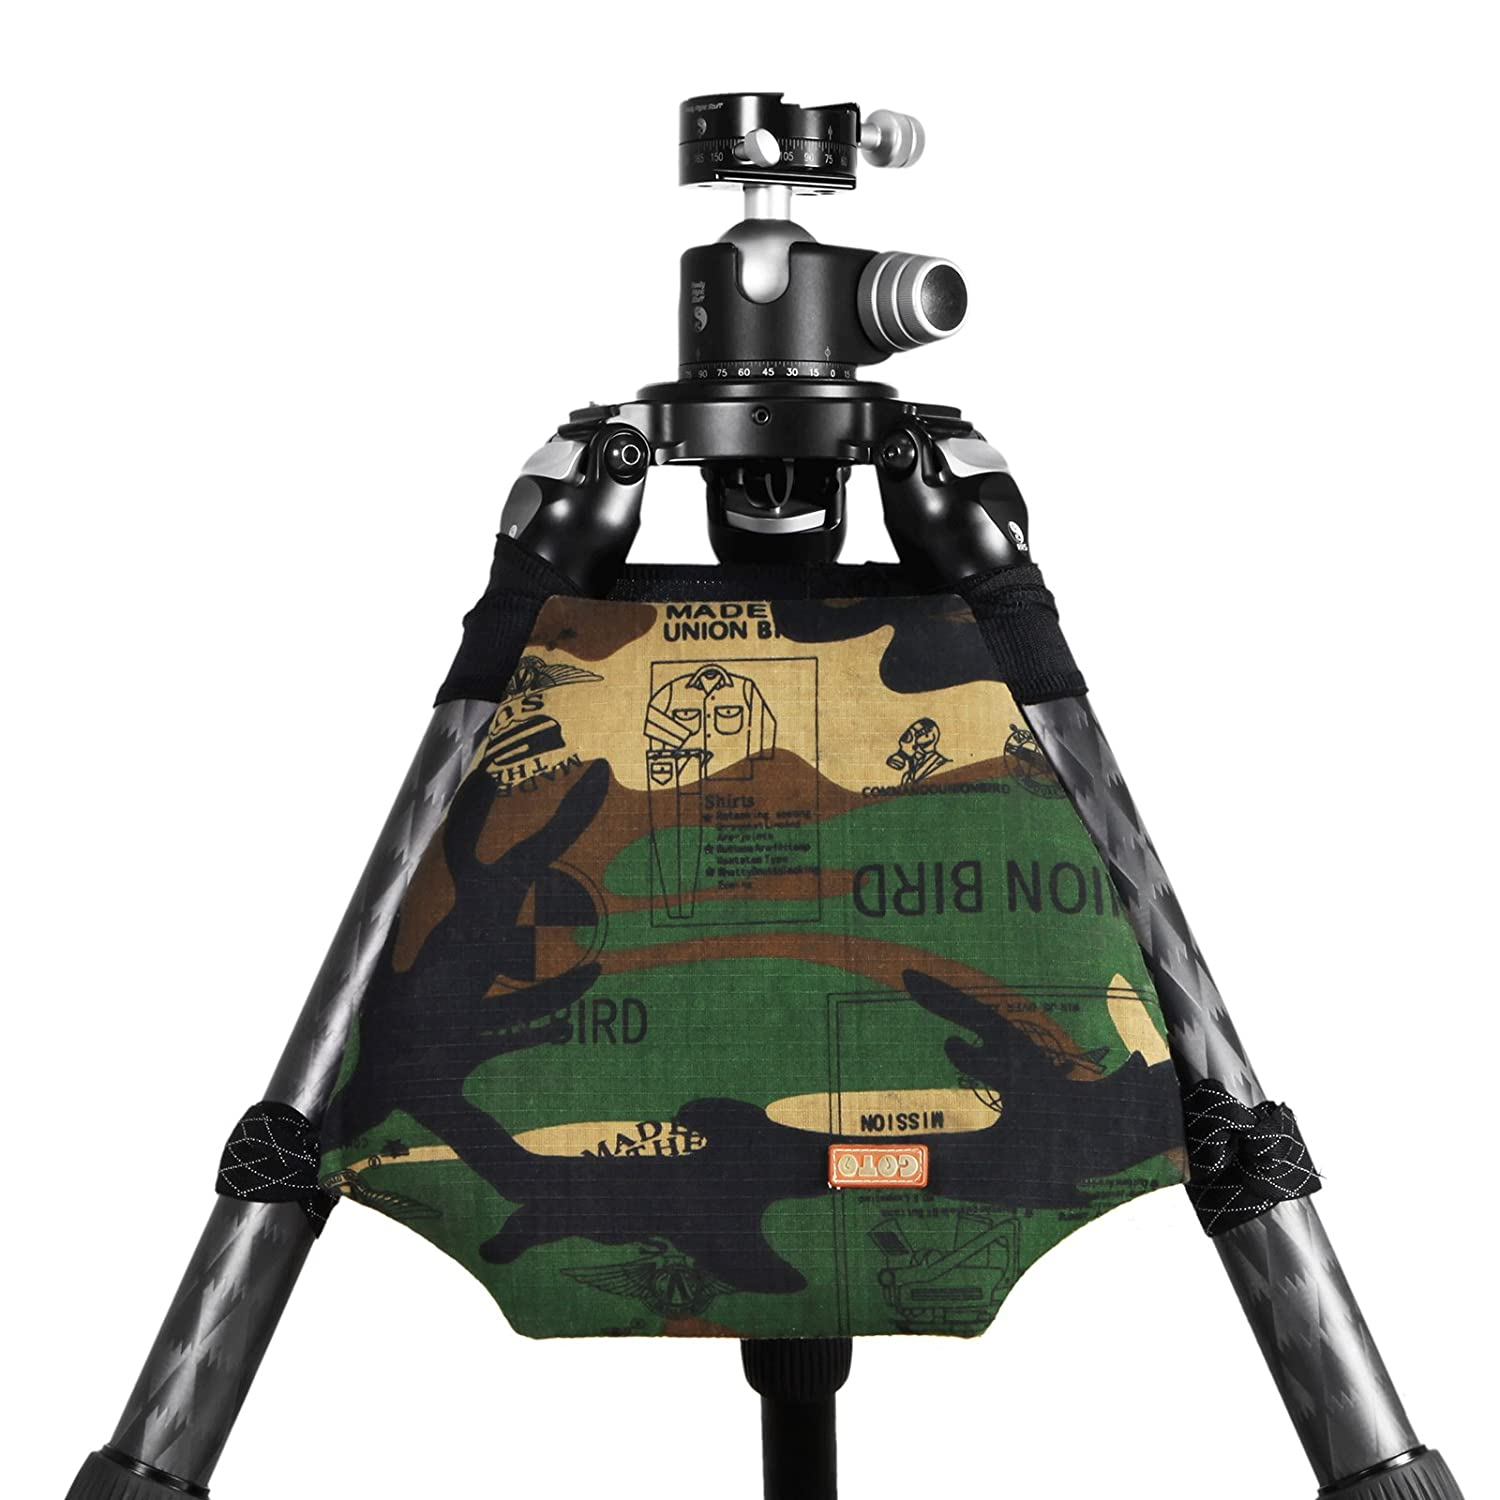 Mekingstudio General Carrying Tripod Shoulder Pad for Camera Tripod Support Camouflage